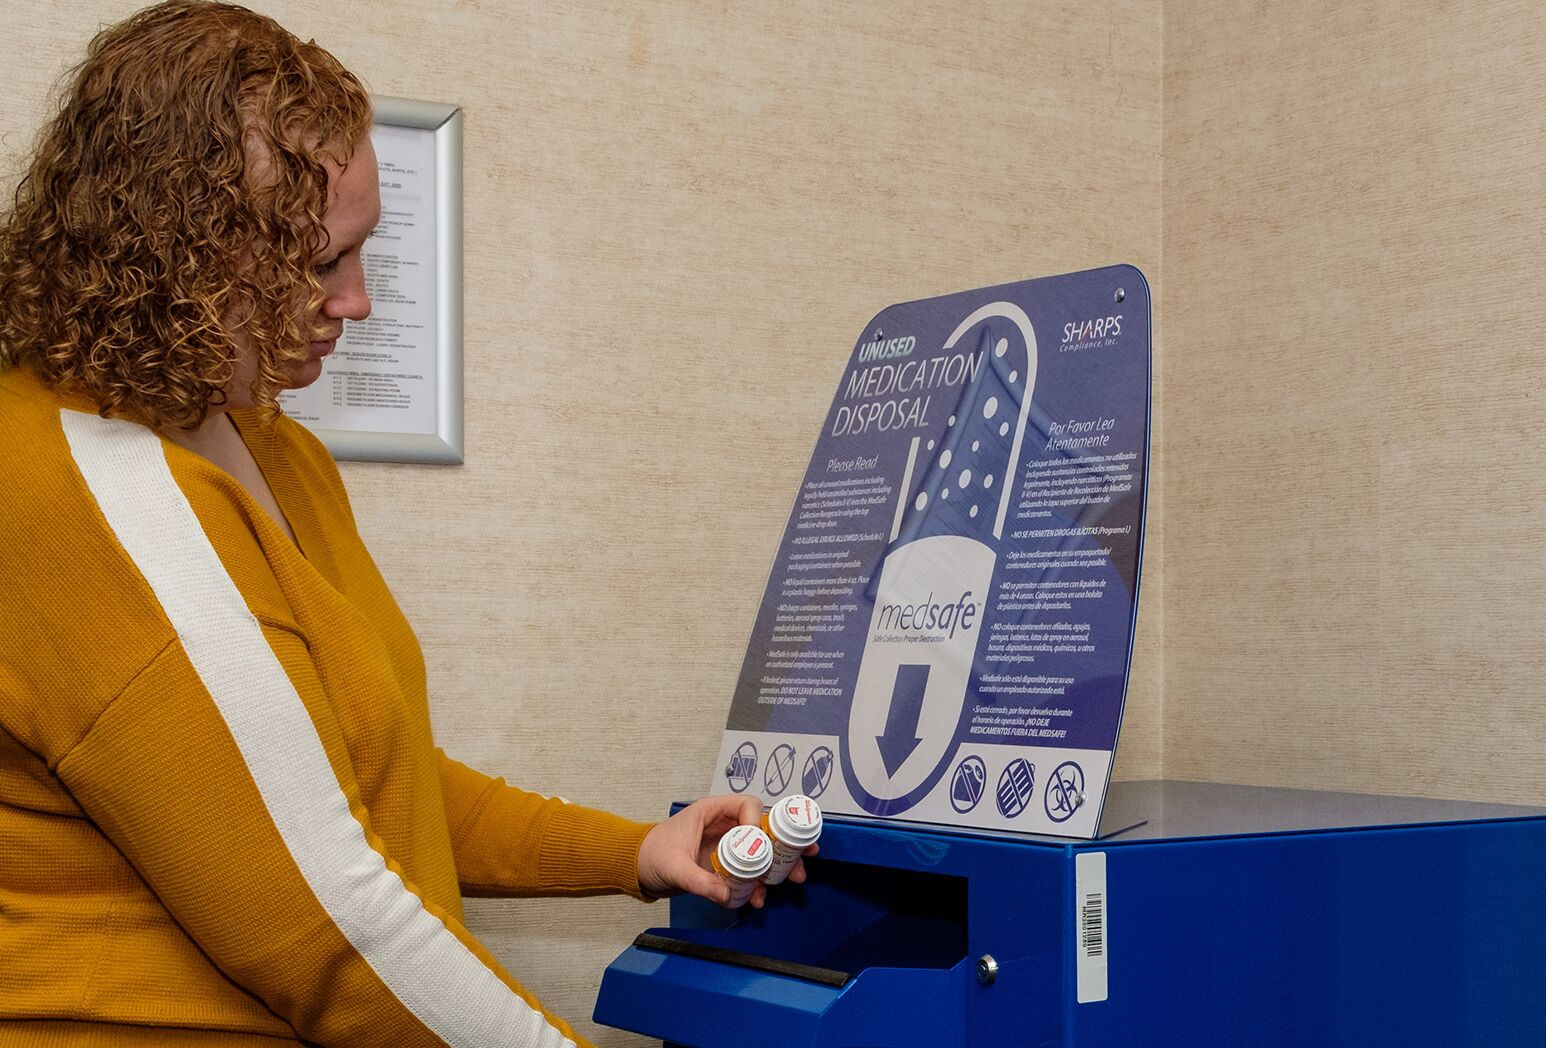 Eleven Northwell Health facilities across Long Island, Queens, Manhattan and Staten Island will be participating in this year's second National Prescription Drug Take Back Day.